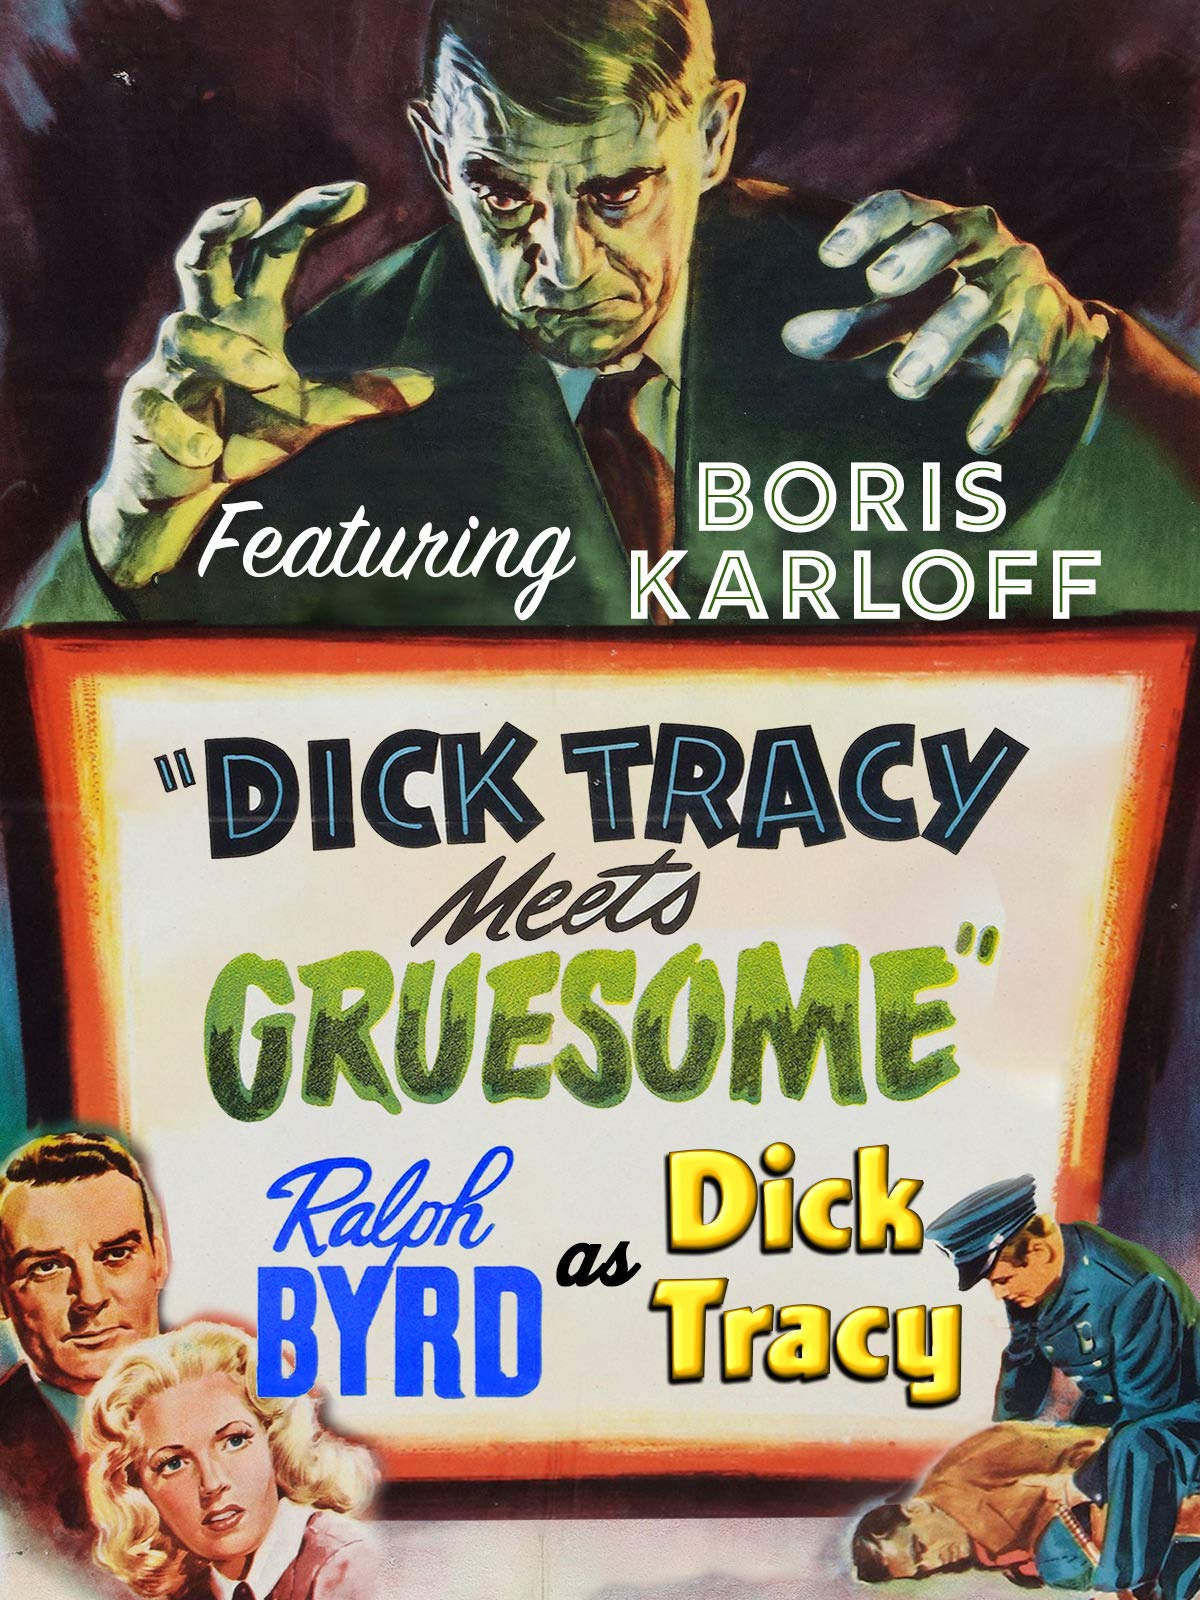 Dick Tracy Meets Gruesome - Ralph Byrd As Dick Tracy , Featuring Boris Karloff